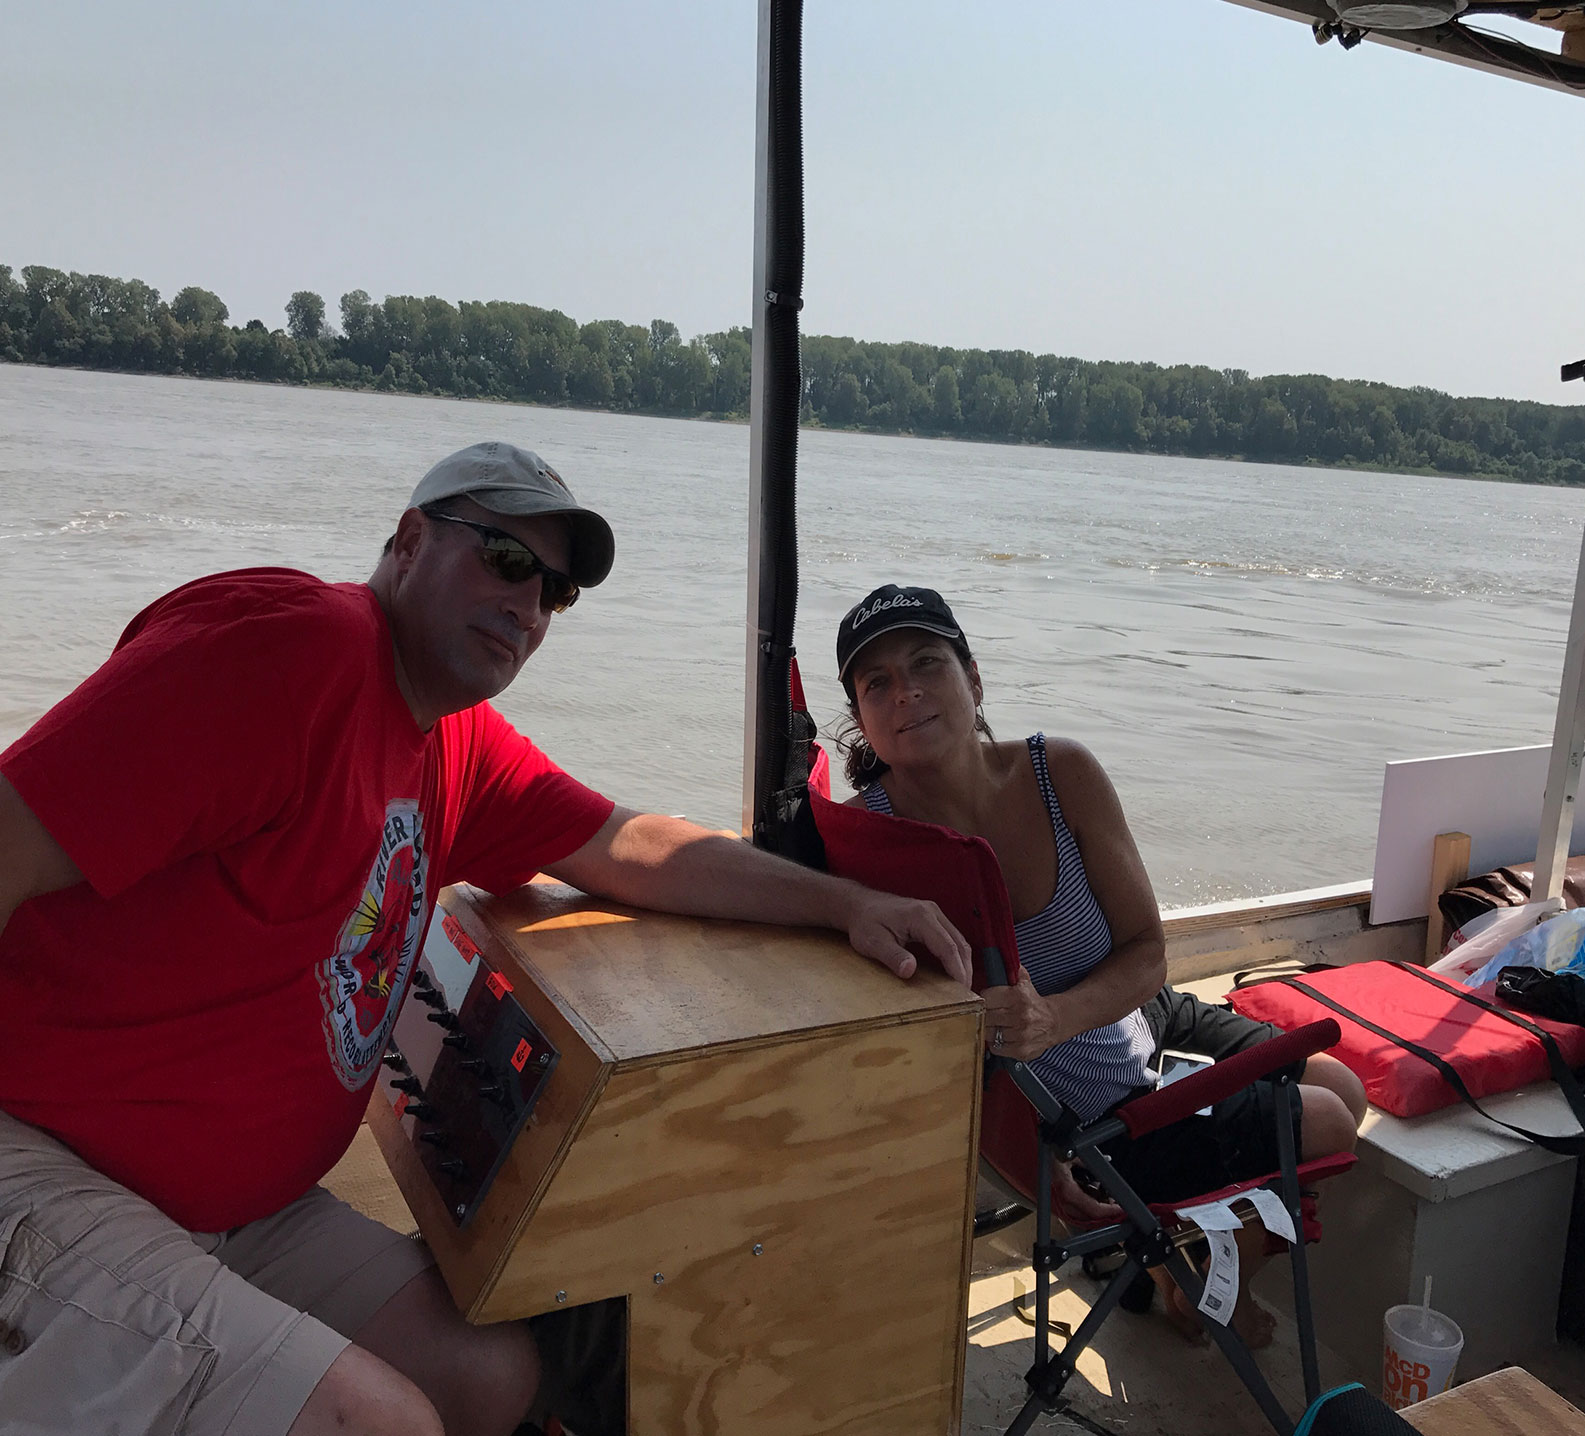 Rich and Kelly Shulte on River Record jon boat